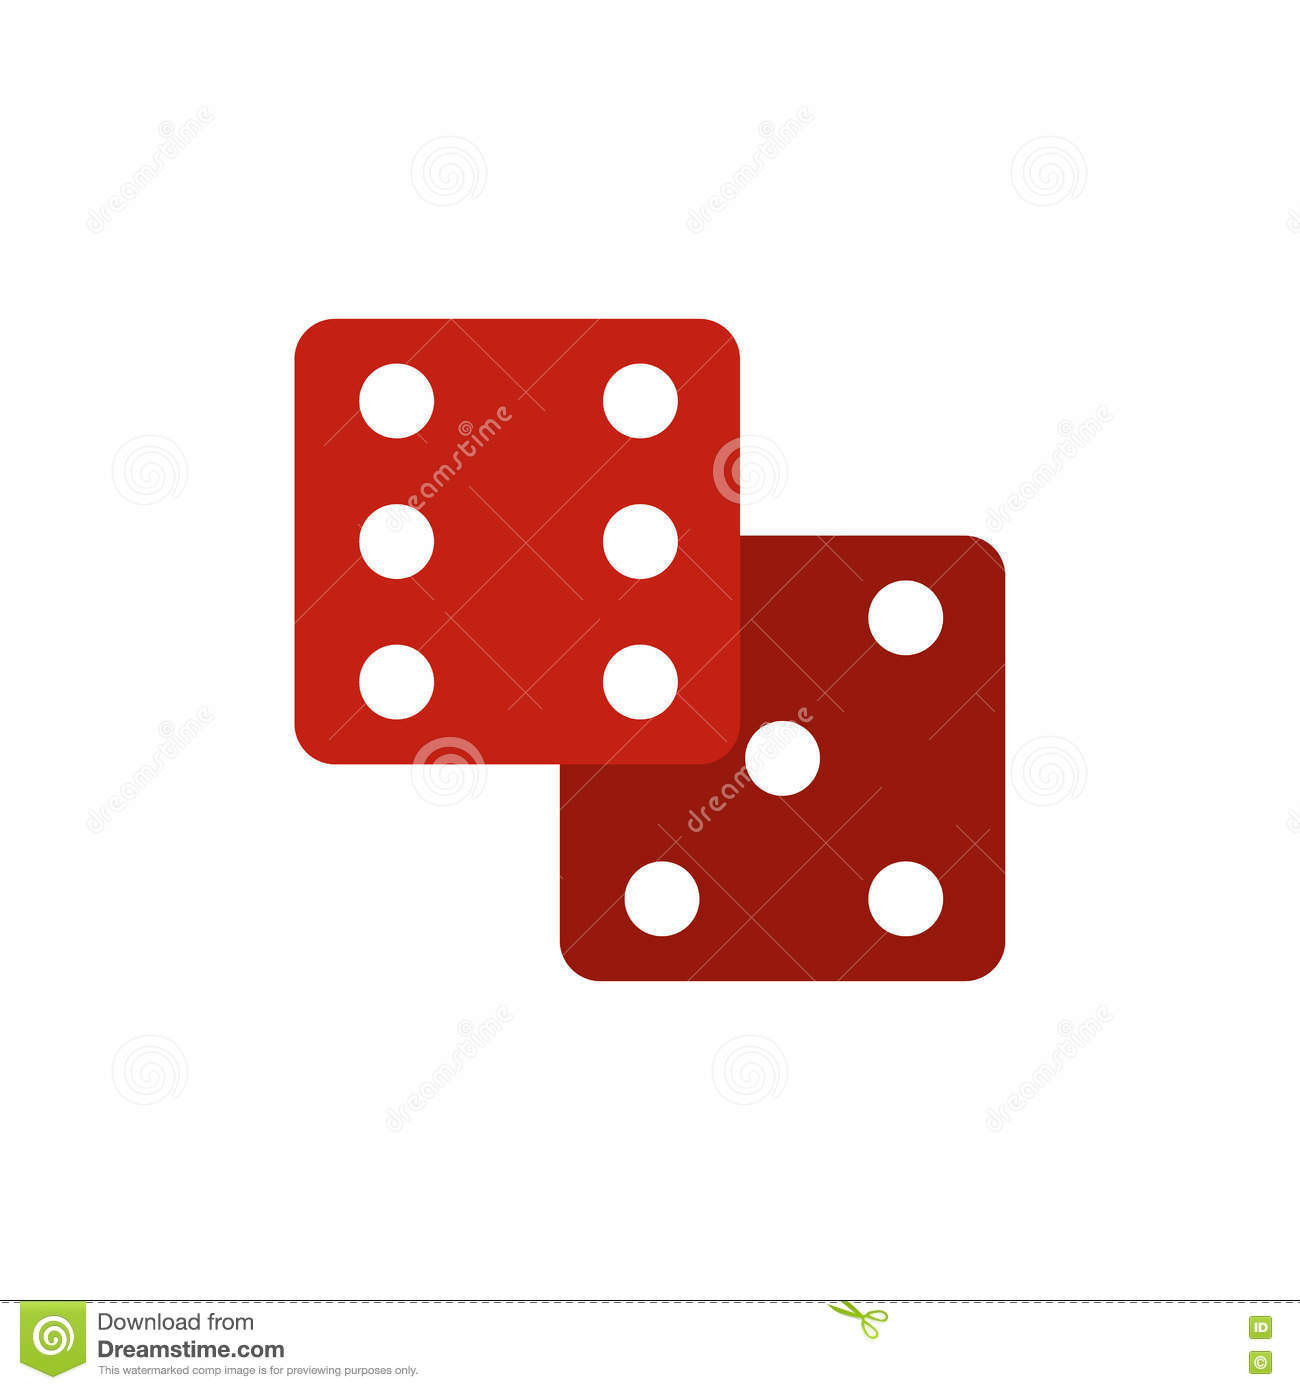 Red dice flat icon